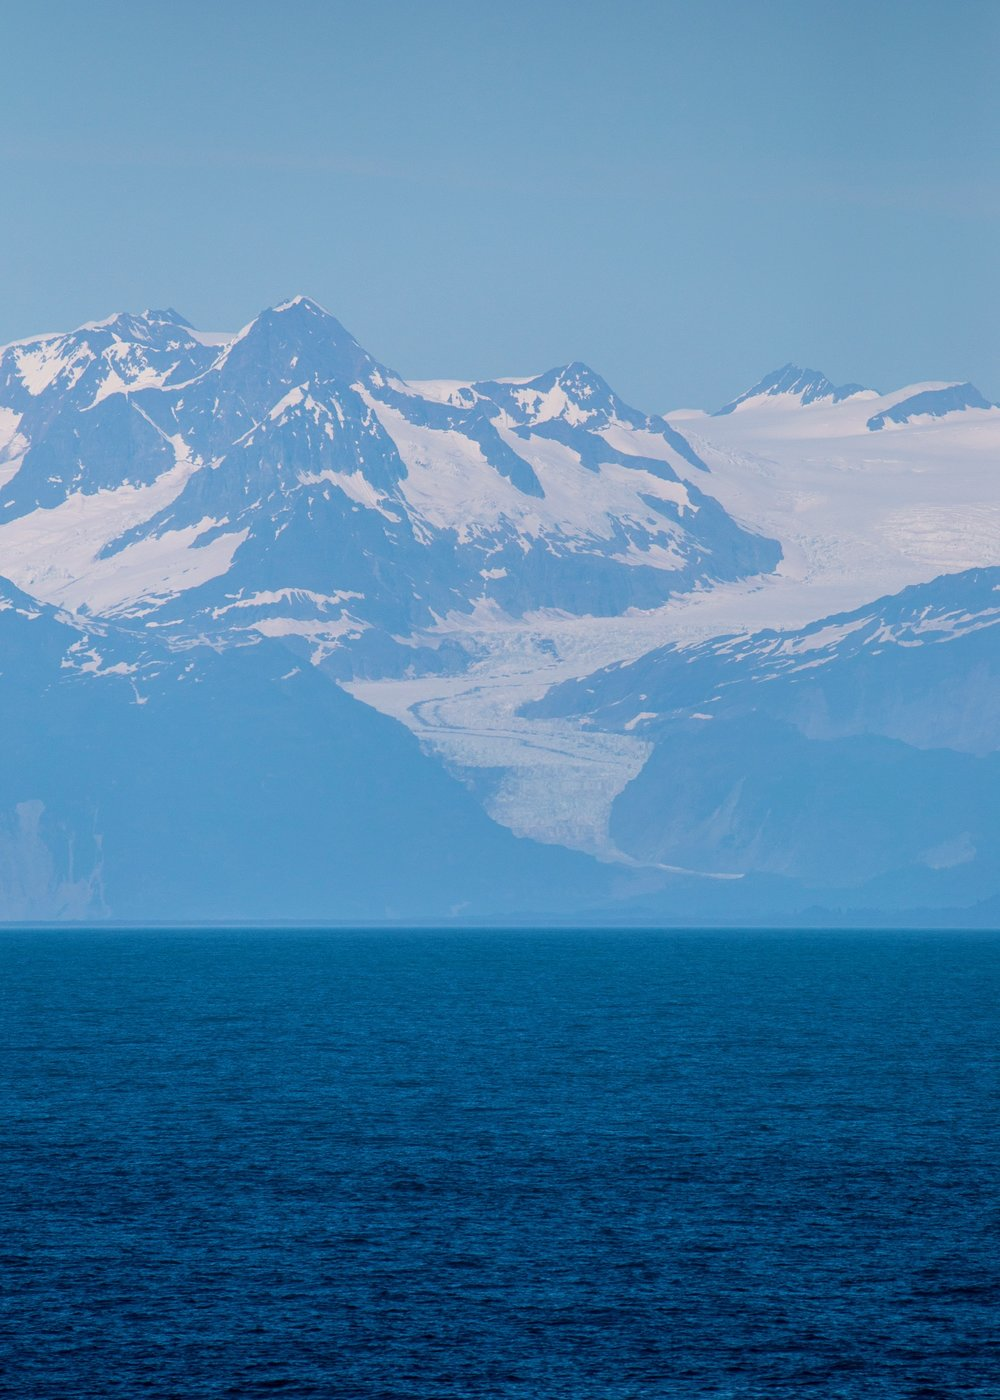 One of the views of mountains and glaciers as we headed south.